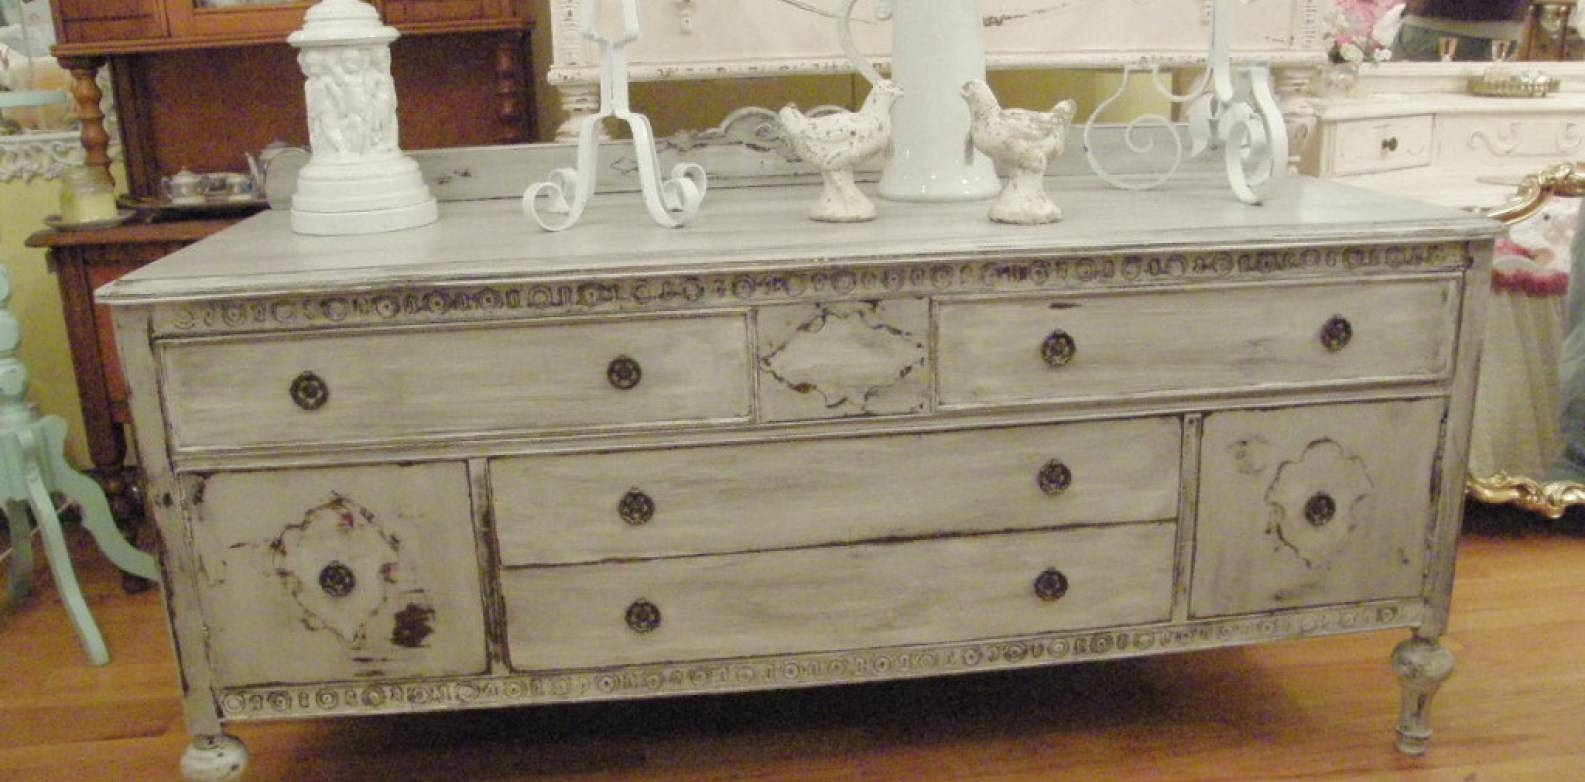 Sideboard : Sideboards. Awesome 72 Inch Sideboard: 72 Inch inside 72 Inch Sideboards (Image 6 of 15)